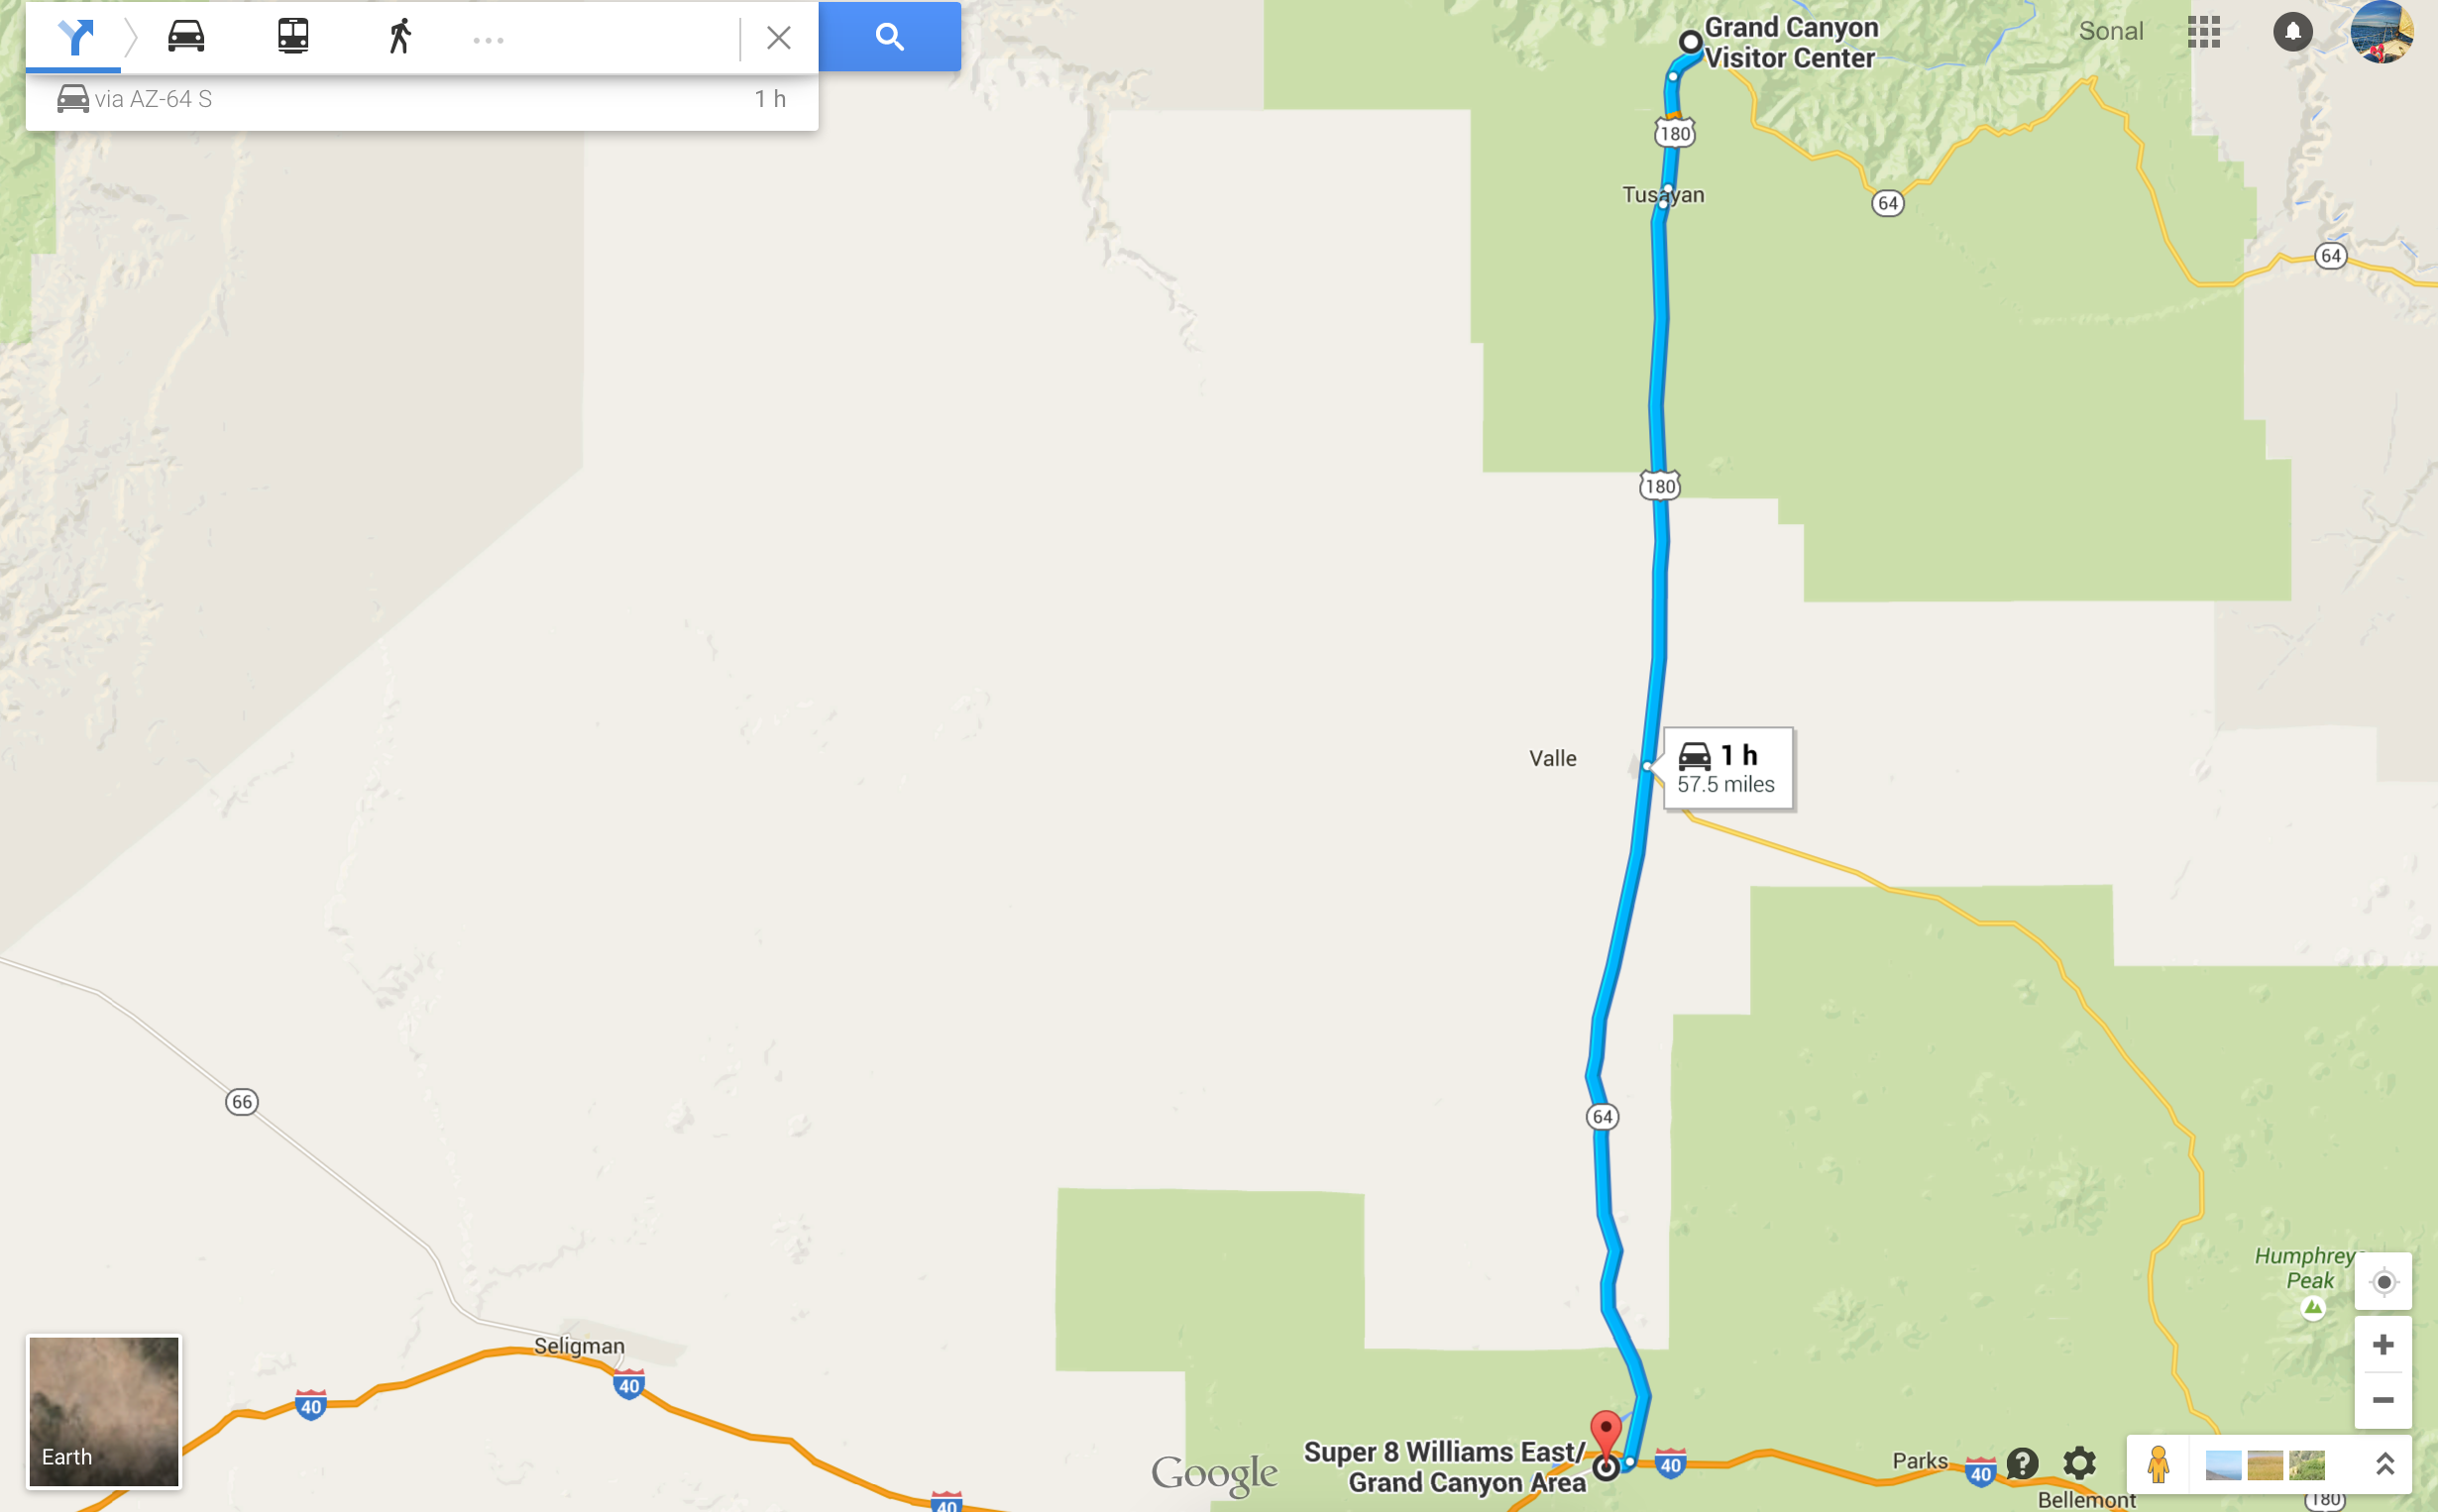 Directions from Grand Canyon to Super 8 in Williams, AZ